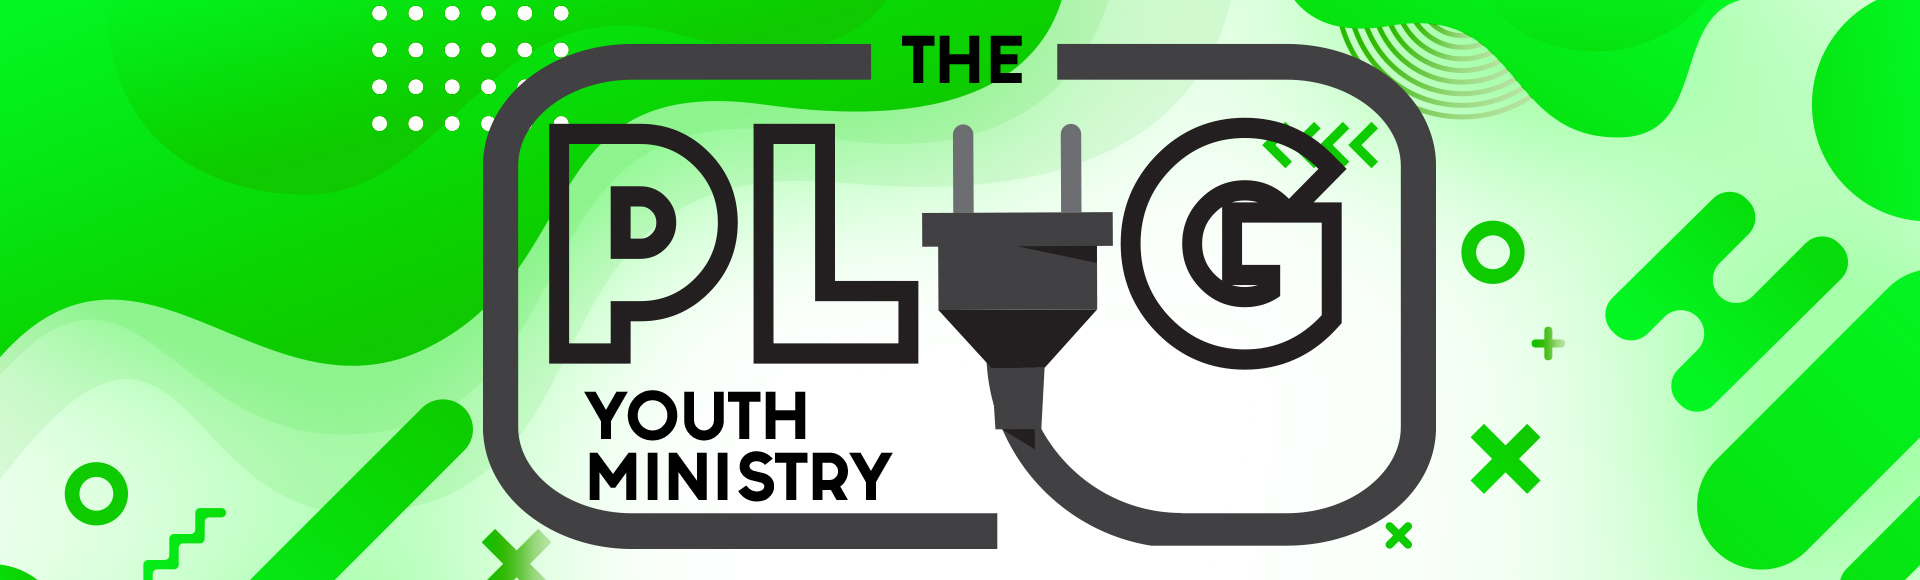 The Plug Youth Ministry banner